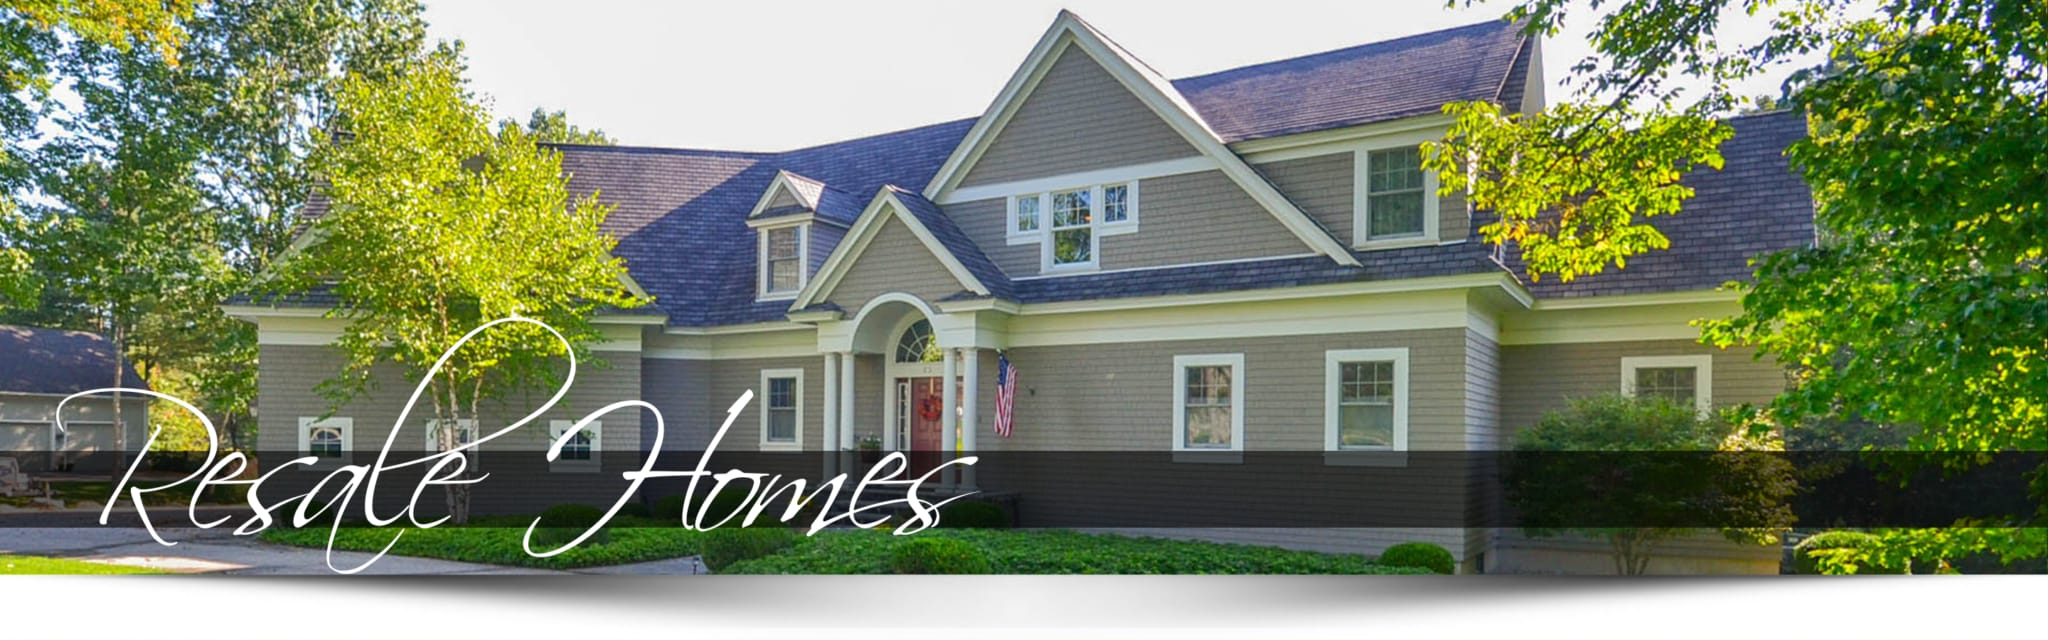 Home with resale homes banner